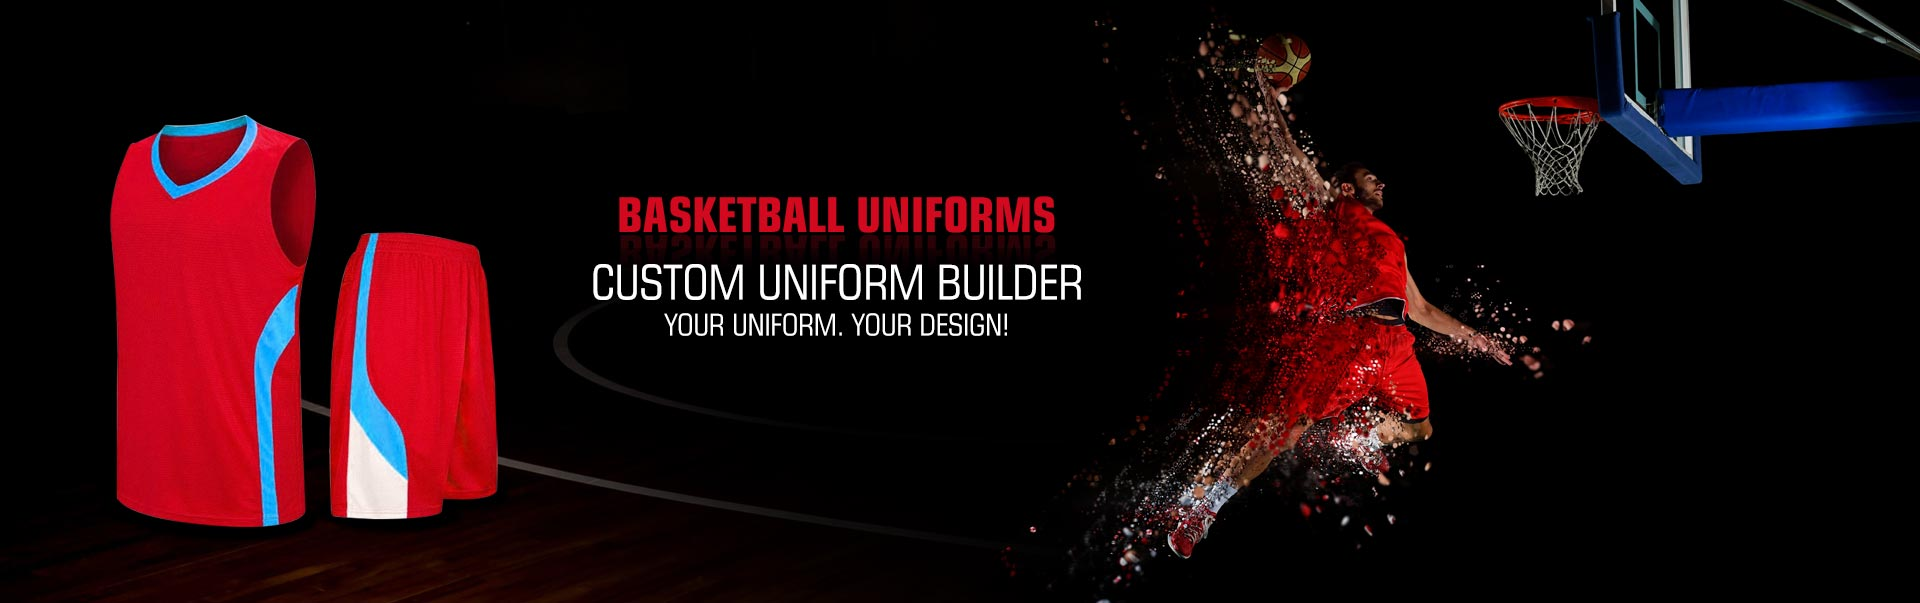 Basketball Uniforms Wholesaler, Suppliers in India